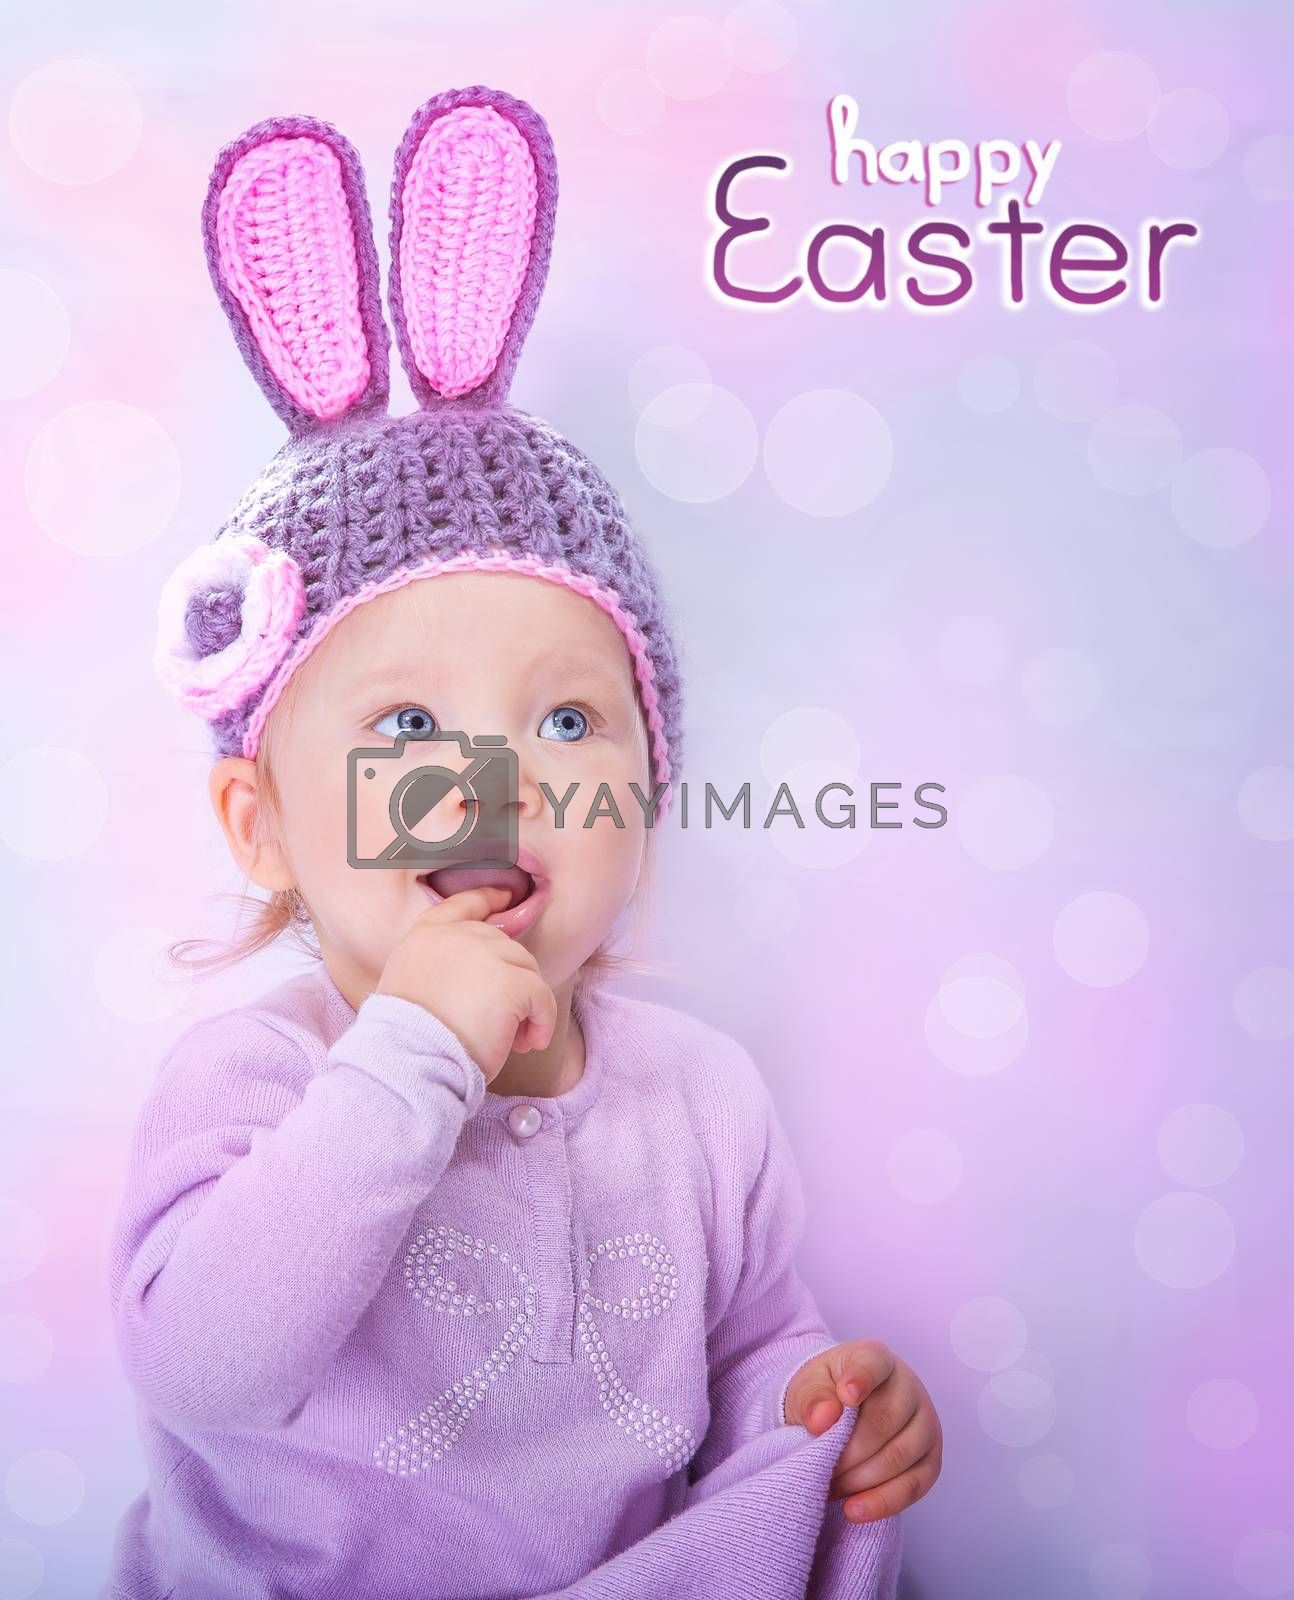 Portrait of happy adorable child wearing cute knitted hat with rabbit ears on pink blur background, greeting card with text space, happy Easter bunny costume